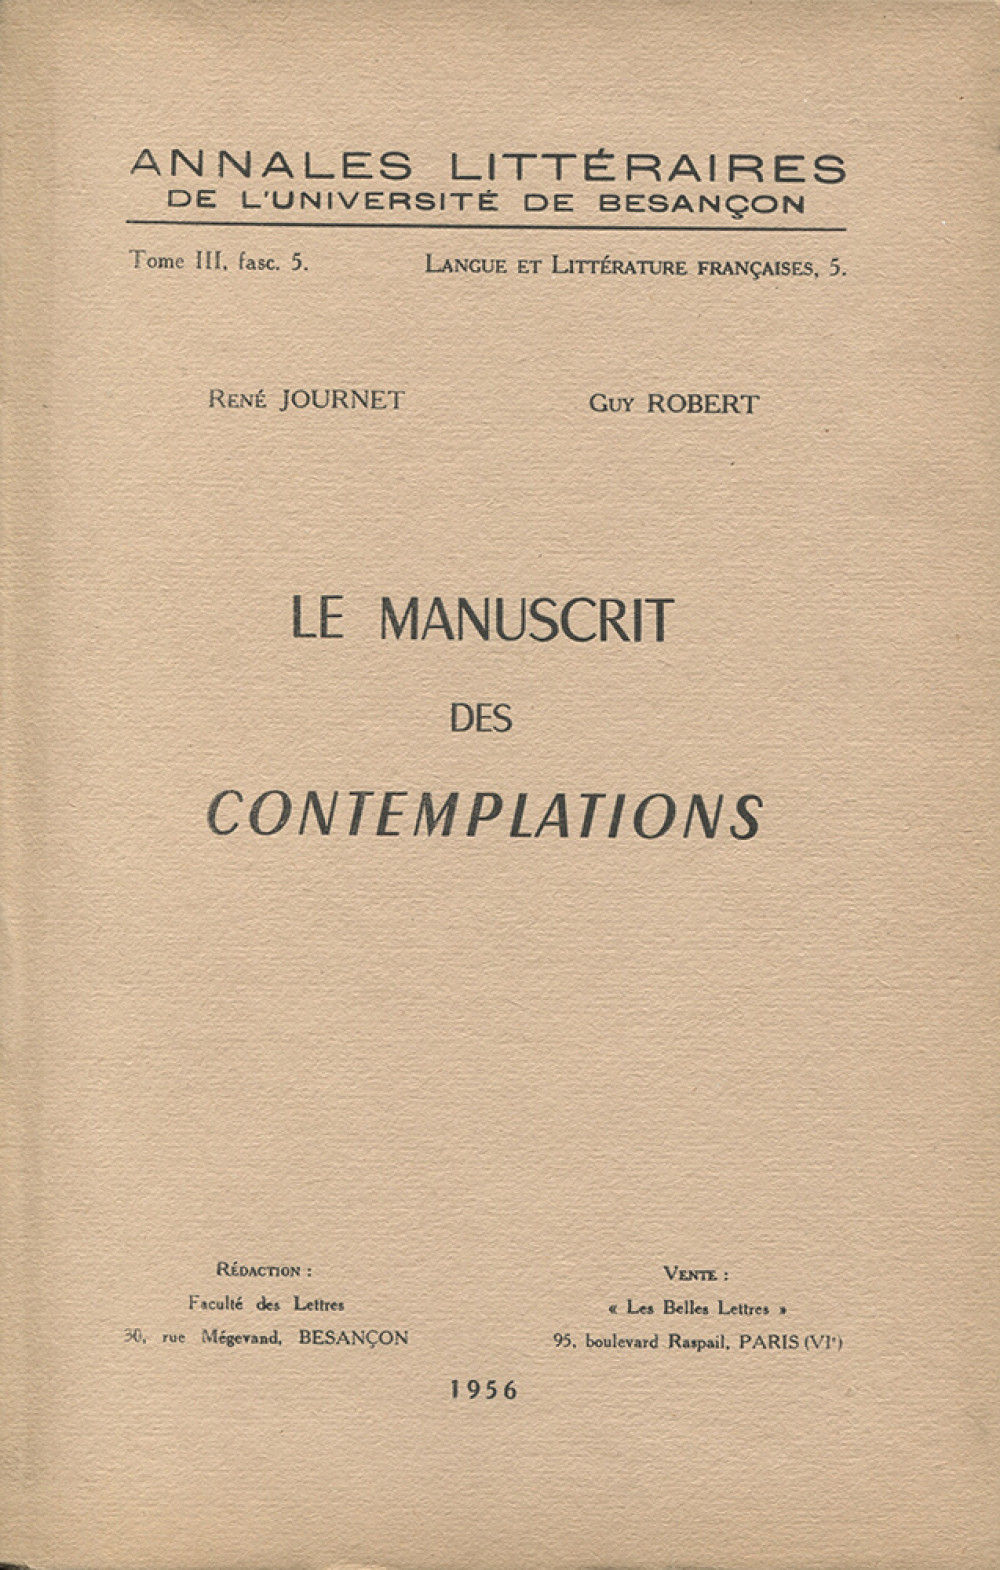 Le manuscrit des Contemplations